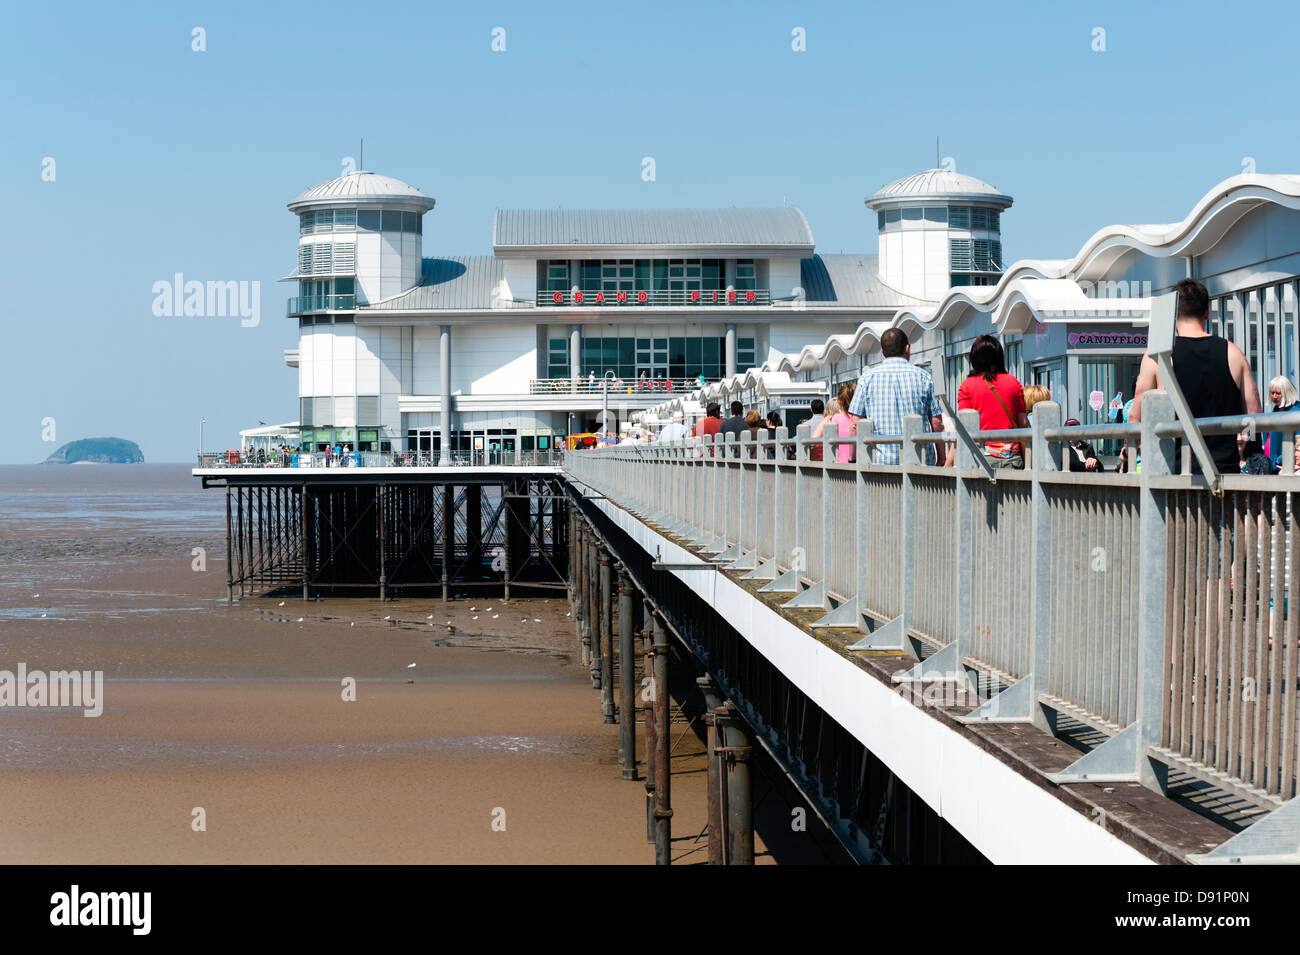 People walking along the Grand Pier at Weston Super Mare, UK. - Stock Image